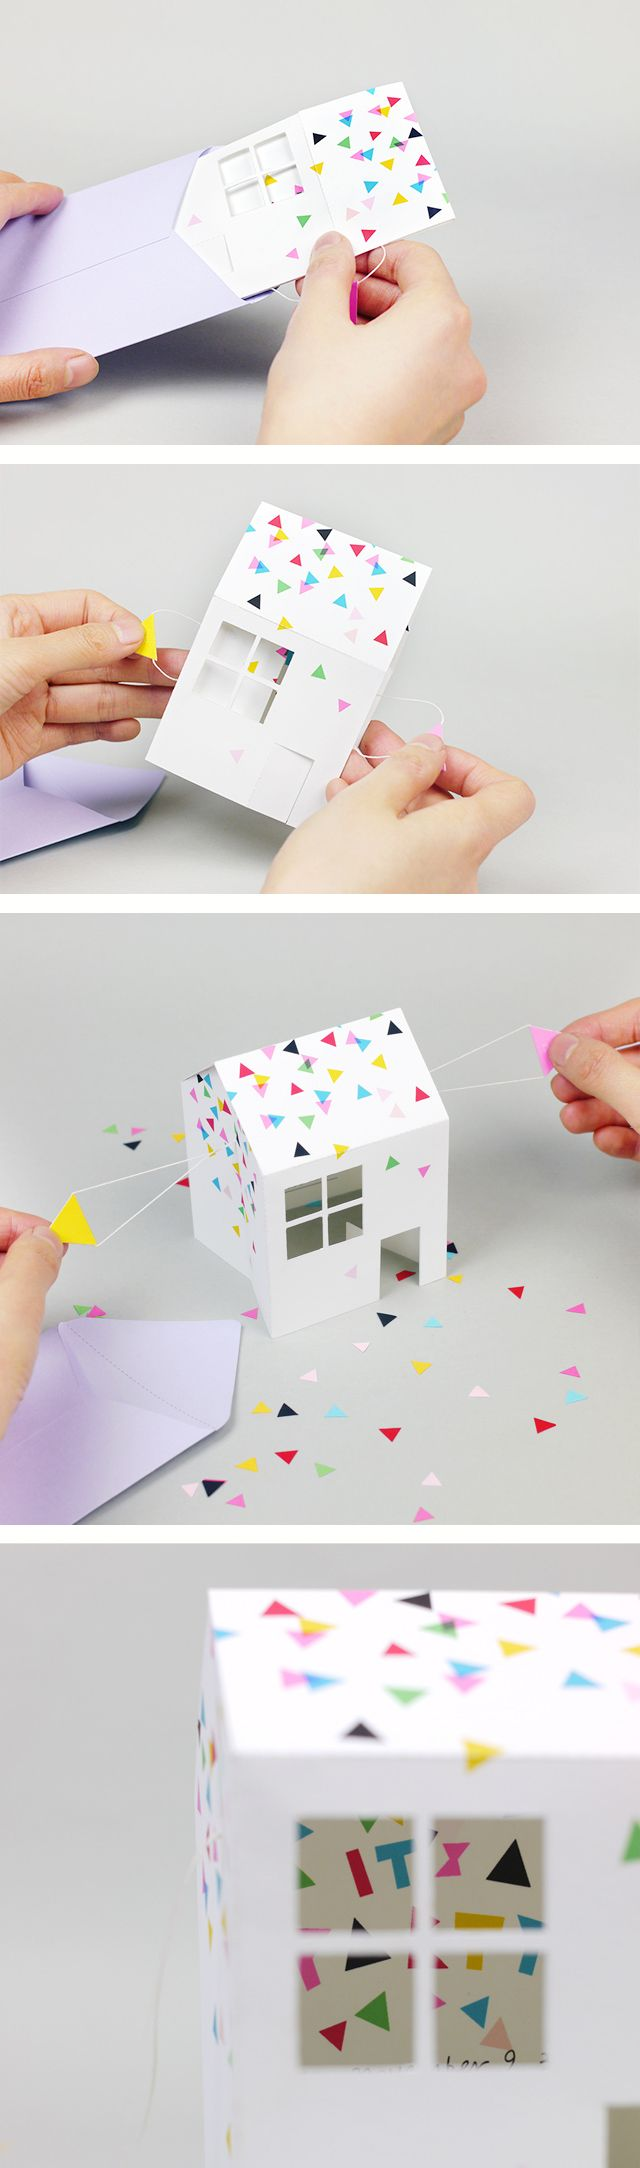 Pop-Up House Party Invitation / Paper Inspiration / DIY Cards https://mrprintables.com/pop-up-house-party-invitation.html